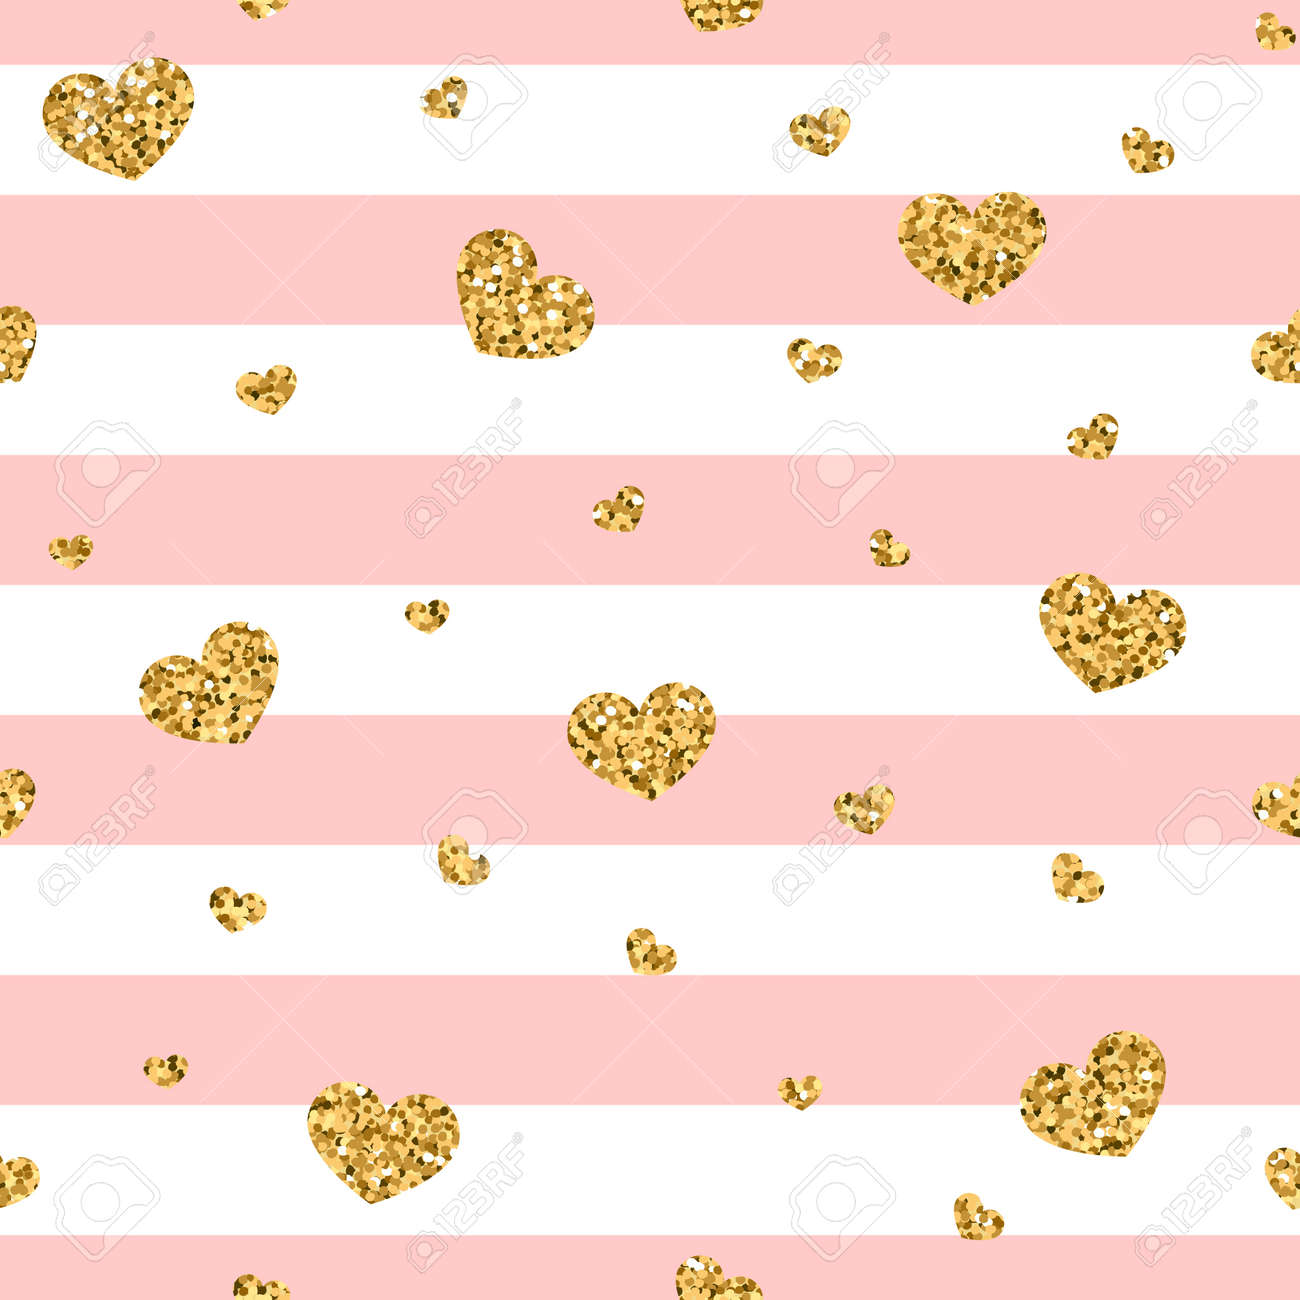 Coeurs D Or Rayures Seamless Pattern Paillettes D Or Et Le Modele